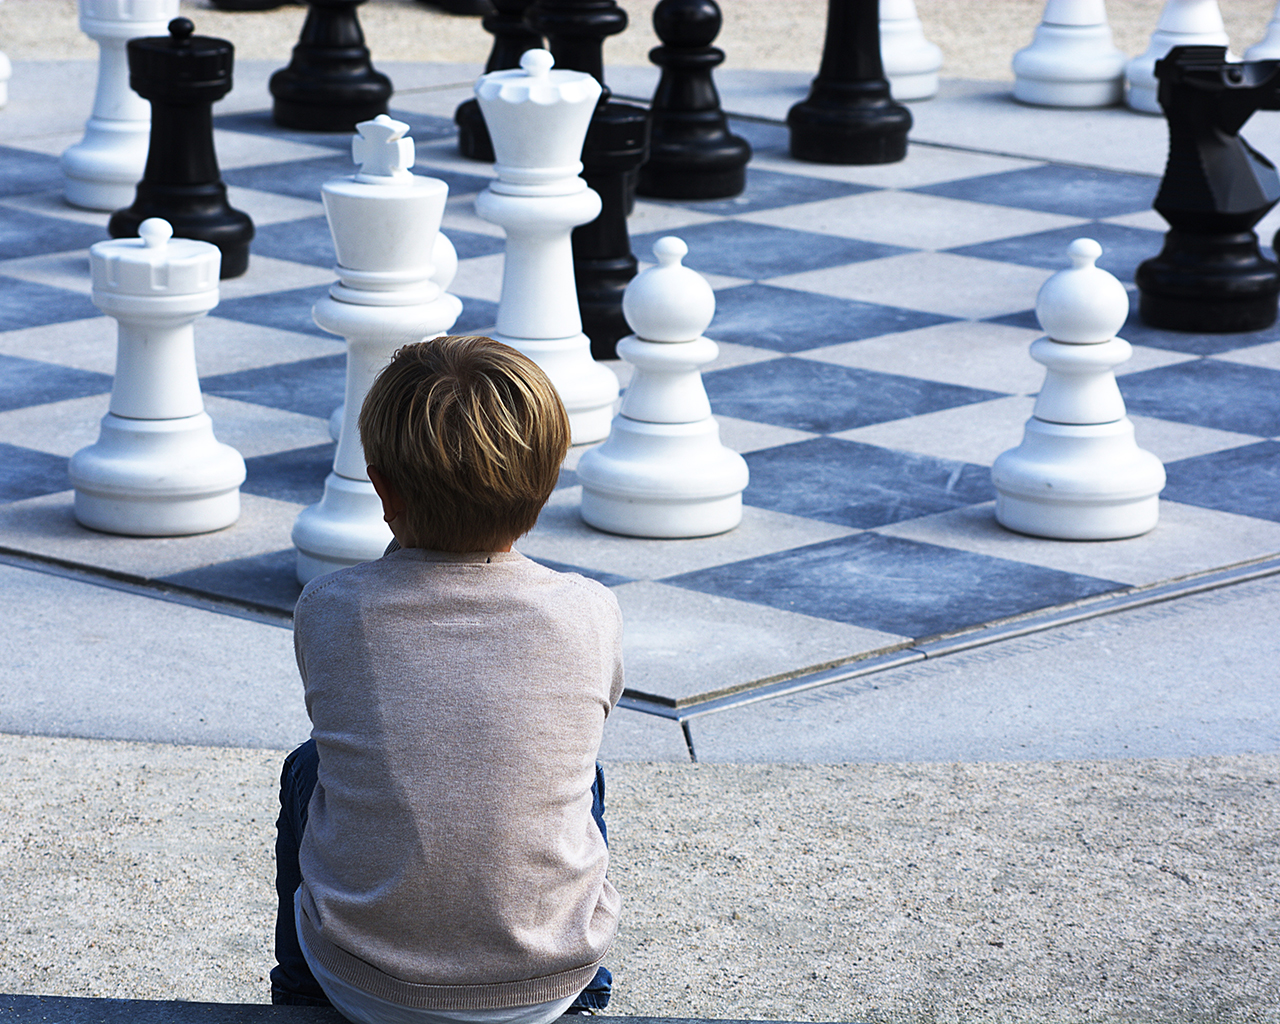 dealing with challenging child